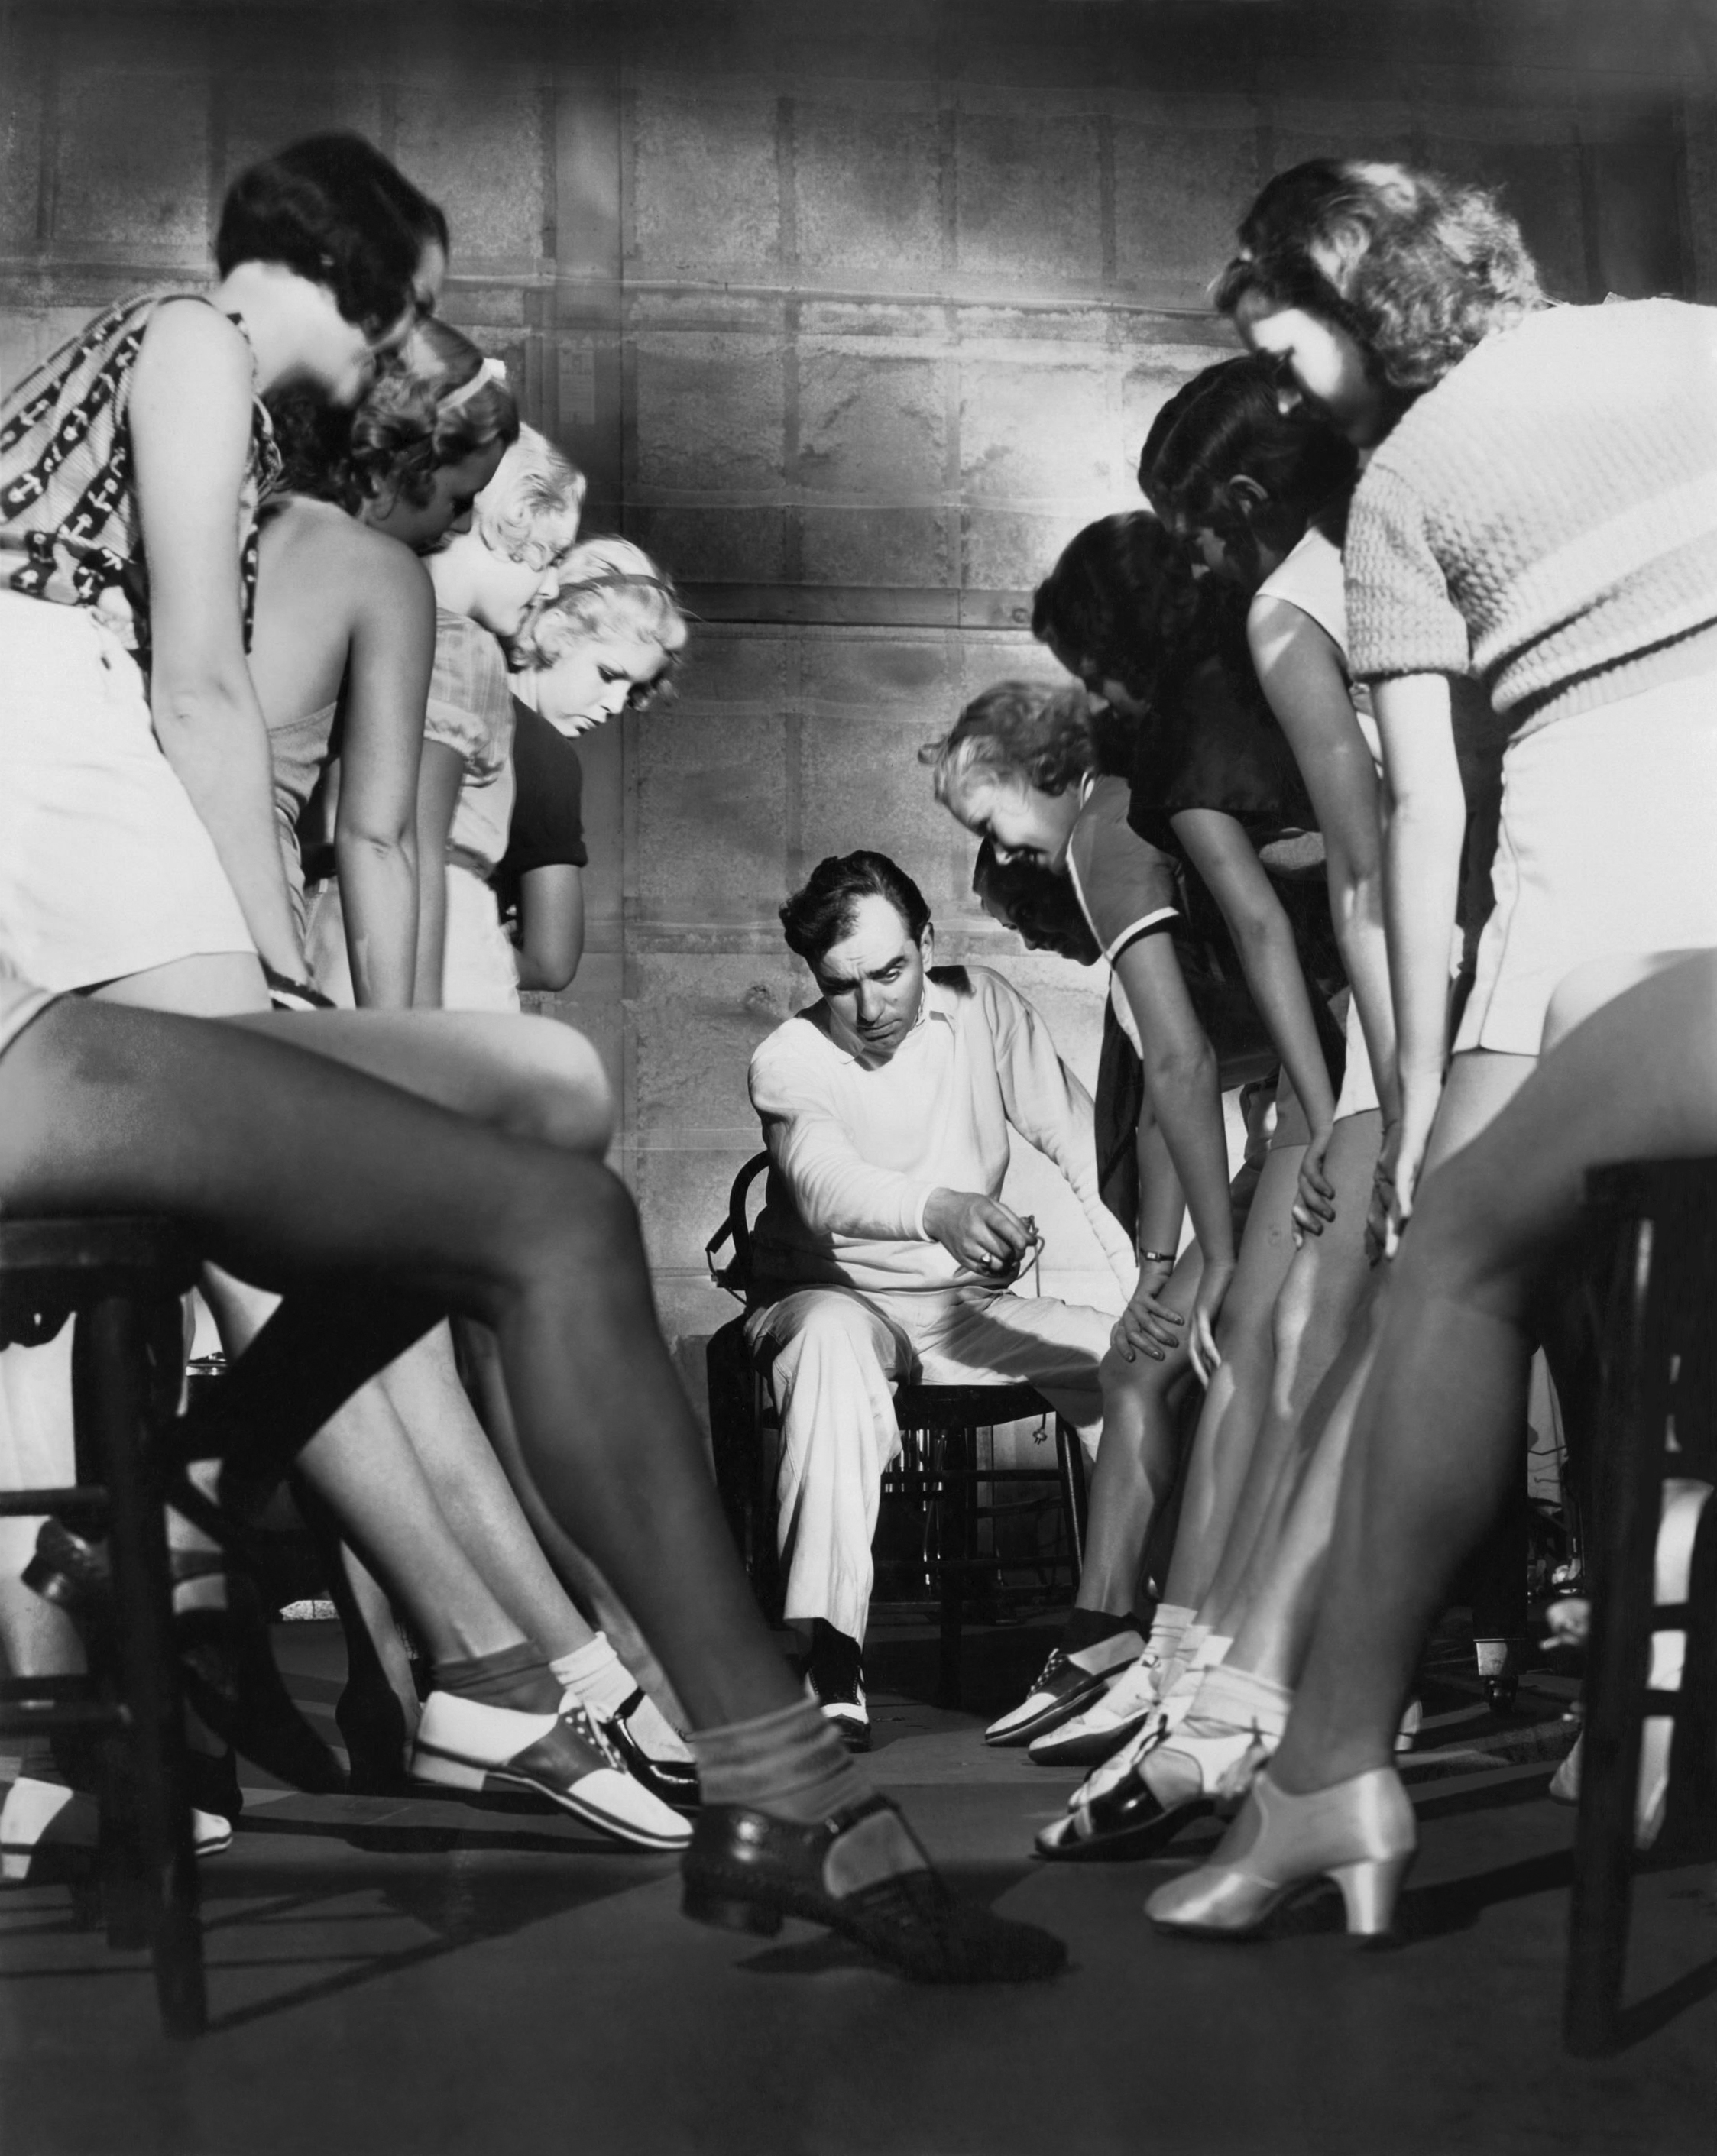 Busby Berkeley, Maxine Cantway, Margaret Carthew, Virginia Dabney, Patsy Farnum, Ann Hovey, Alice Jans, Mildred Dixon, and Marie Arbuckle in 42nd Street (1933)